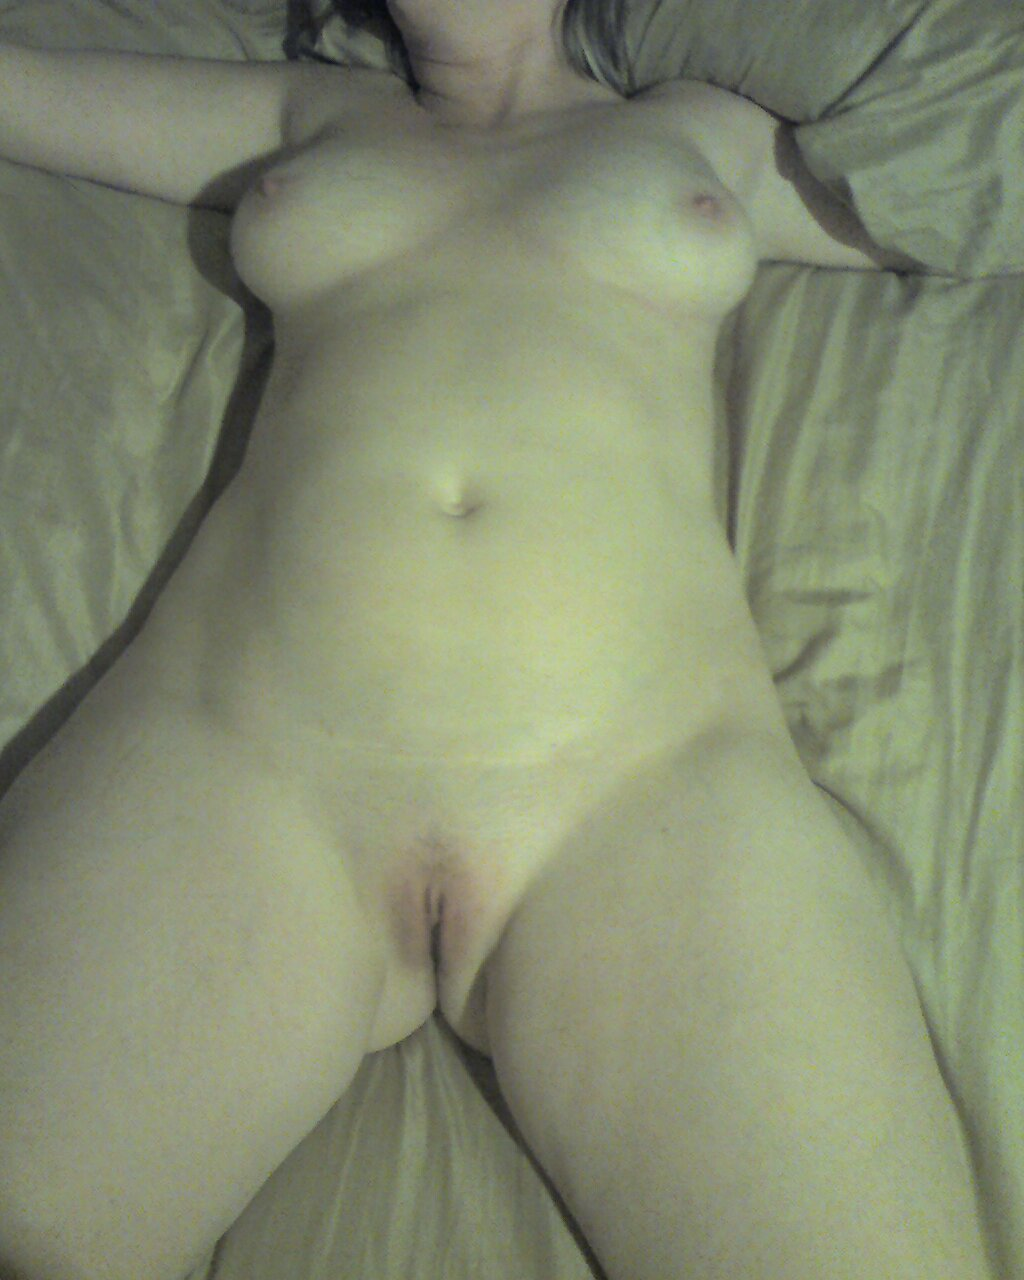 girlfriend nude picture phone